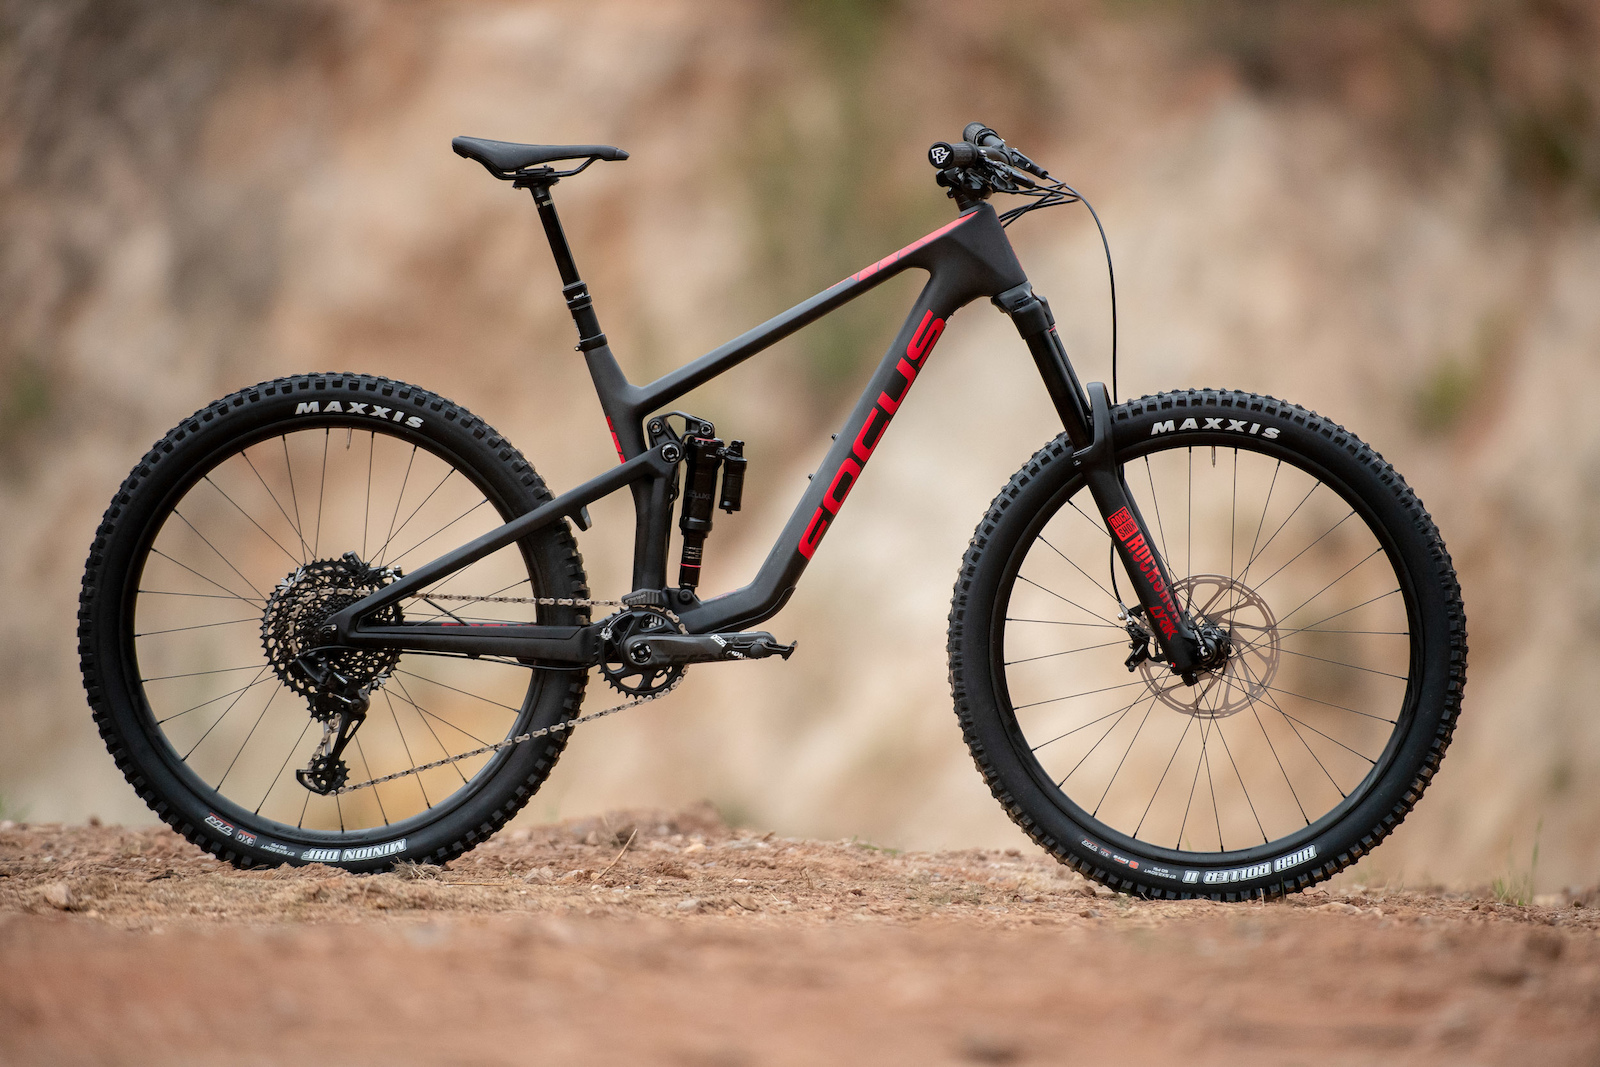 89f96300554 First Ride: The New Focus SAM is a 170mm Lightweight - Pinkbike